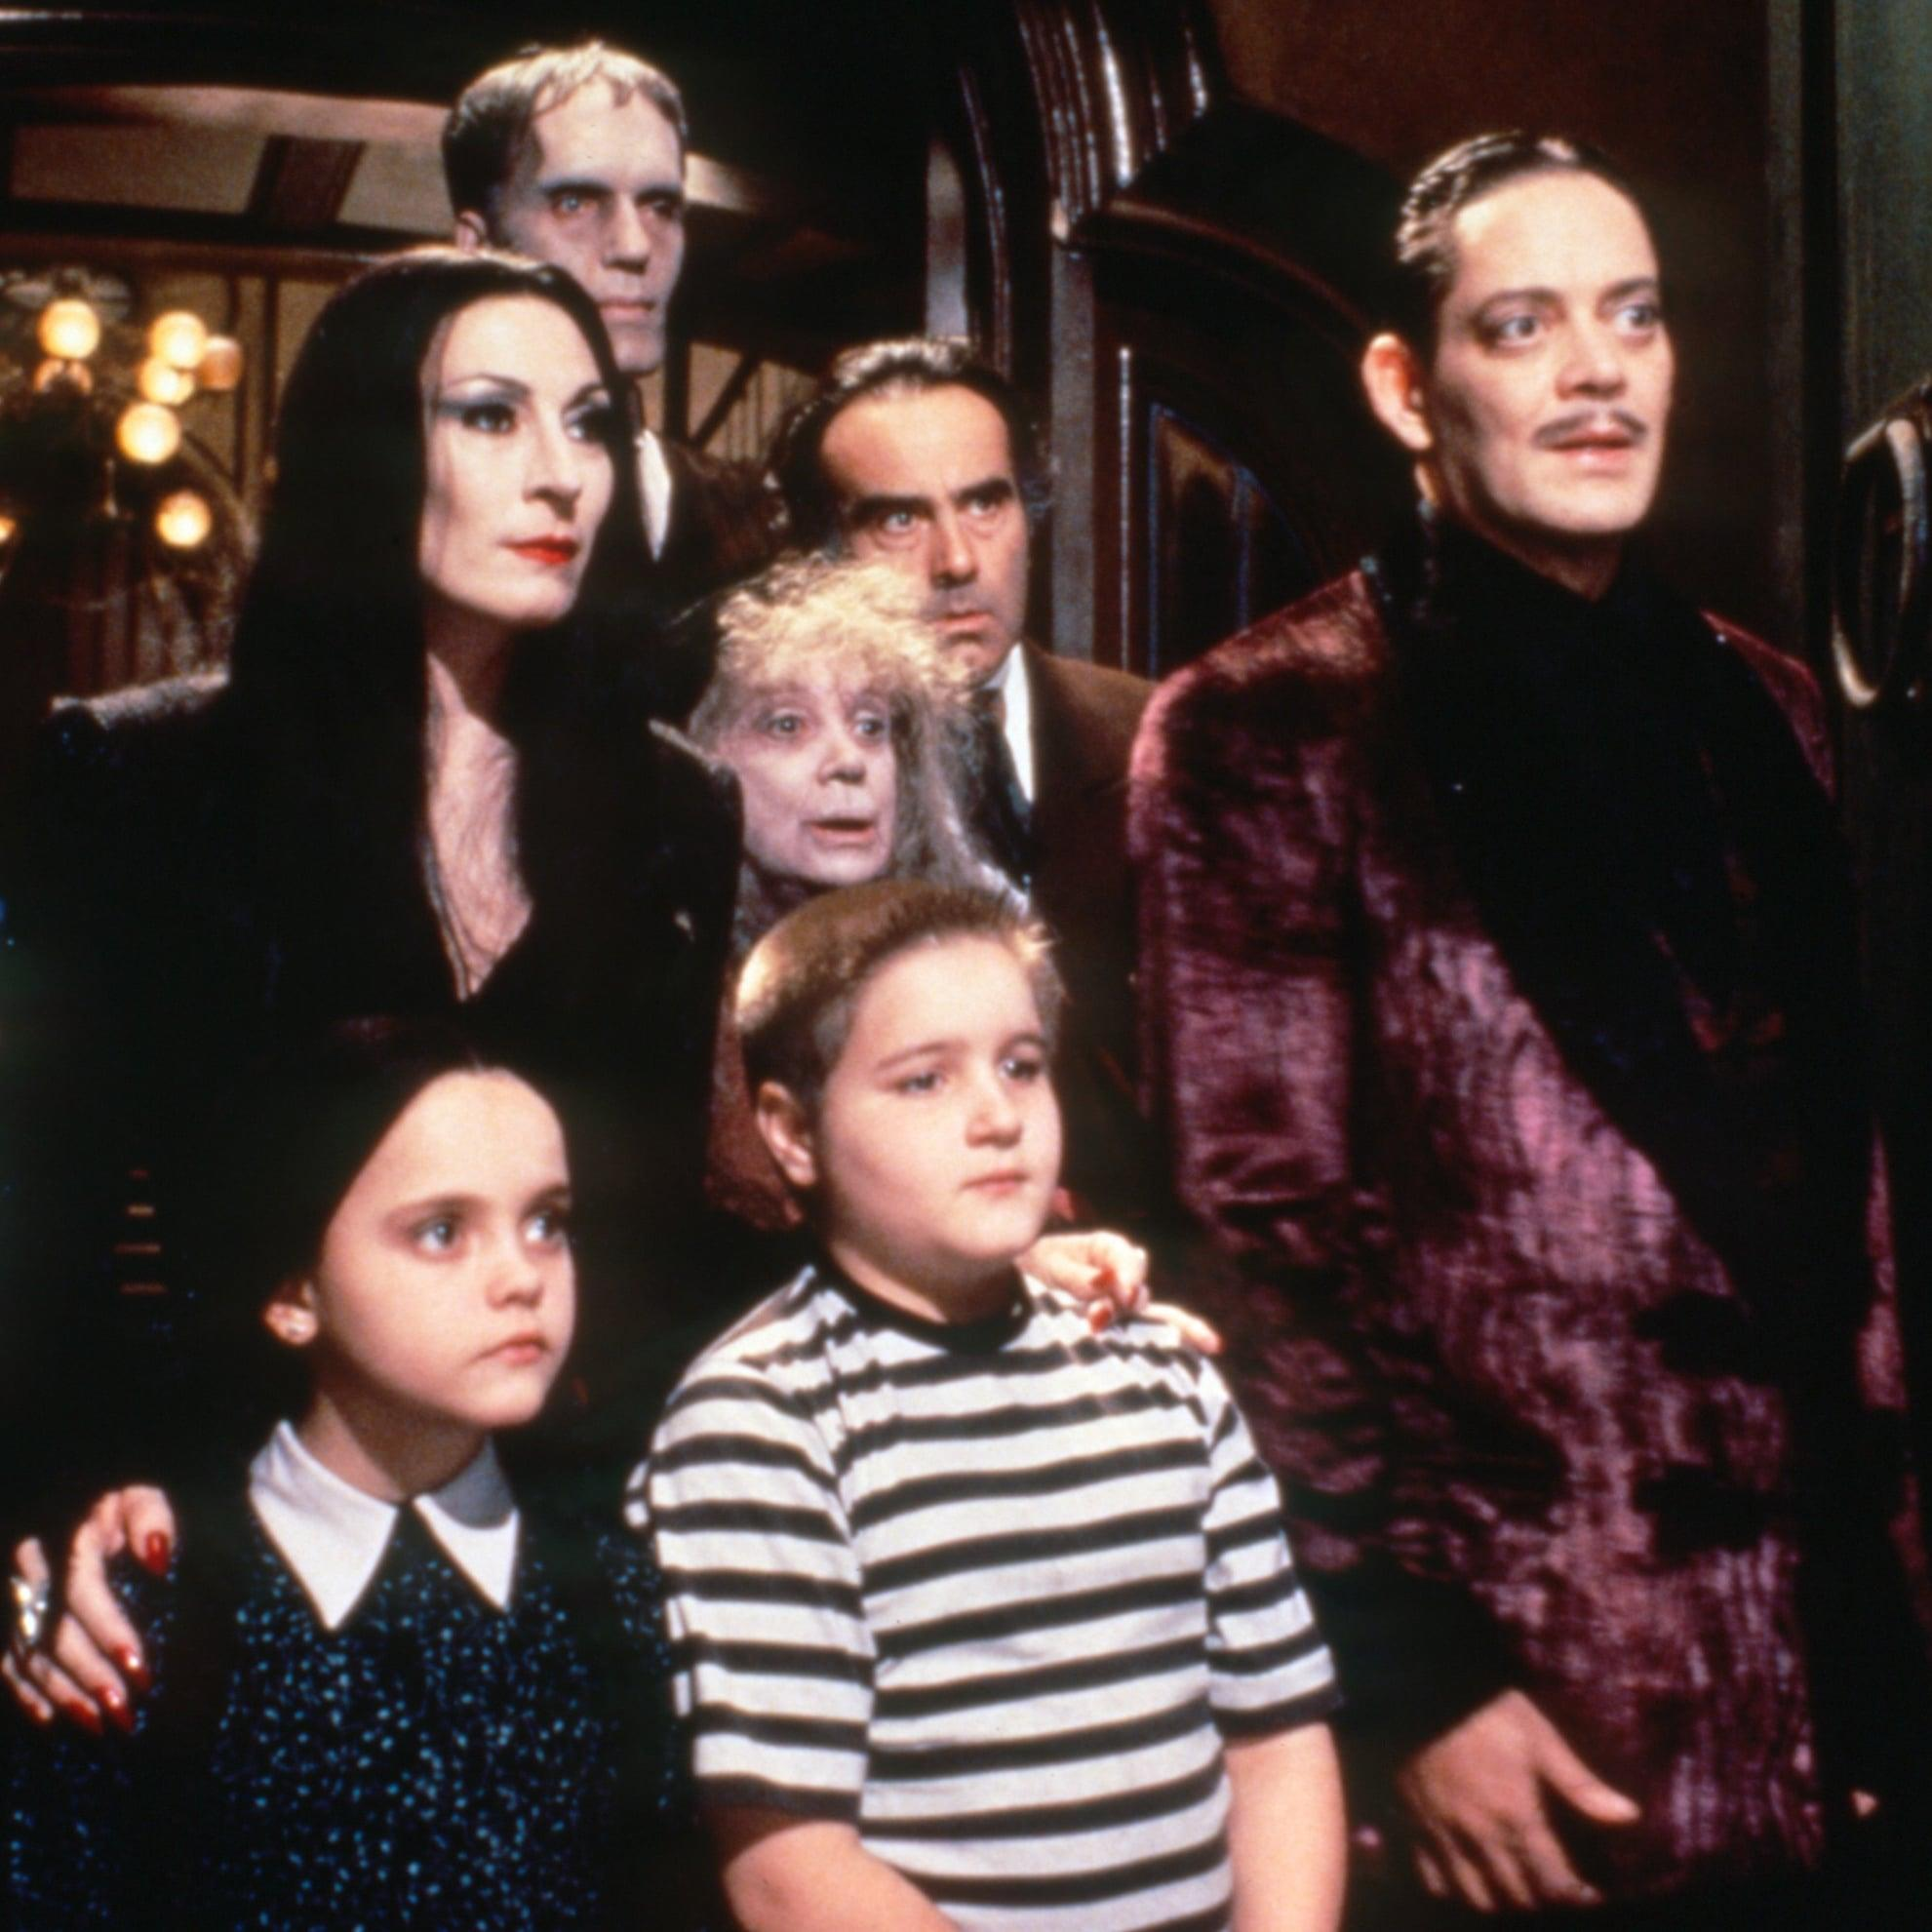 When Can I Stream Halloween 2020 Boo! 14 Kid Friendly Halloween Movies Your Family Can Stream on